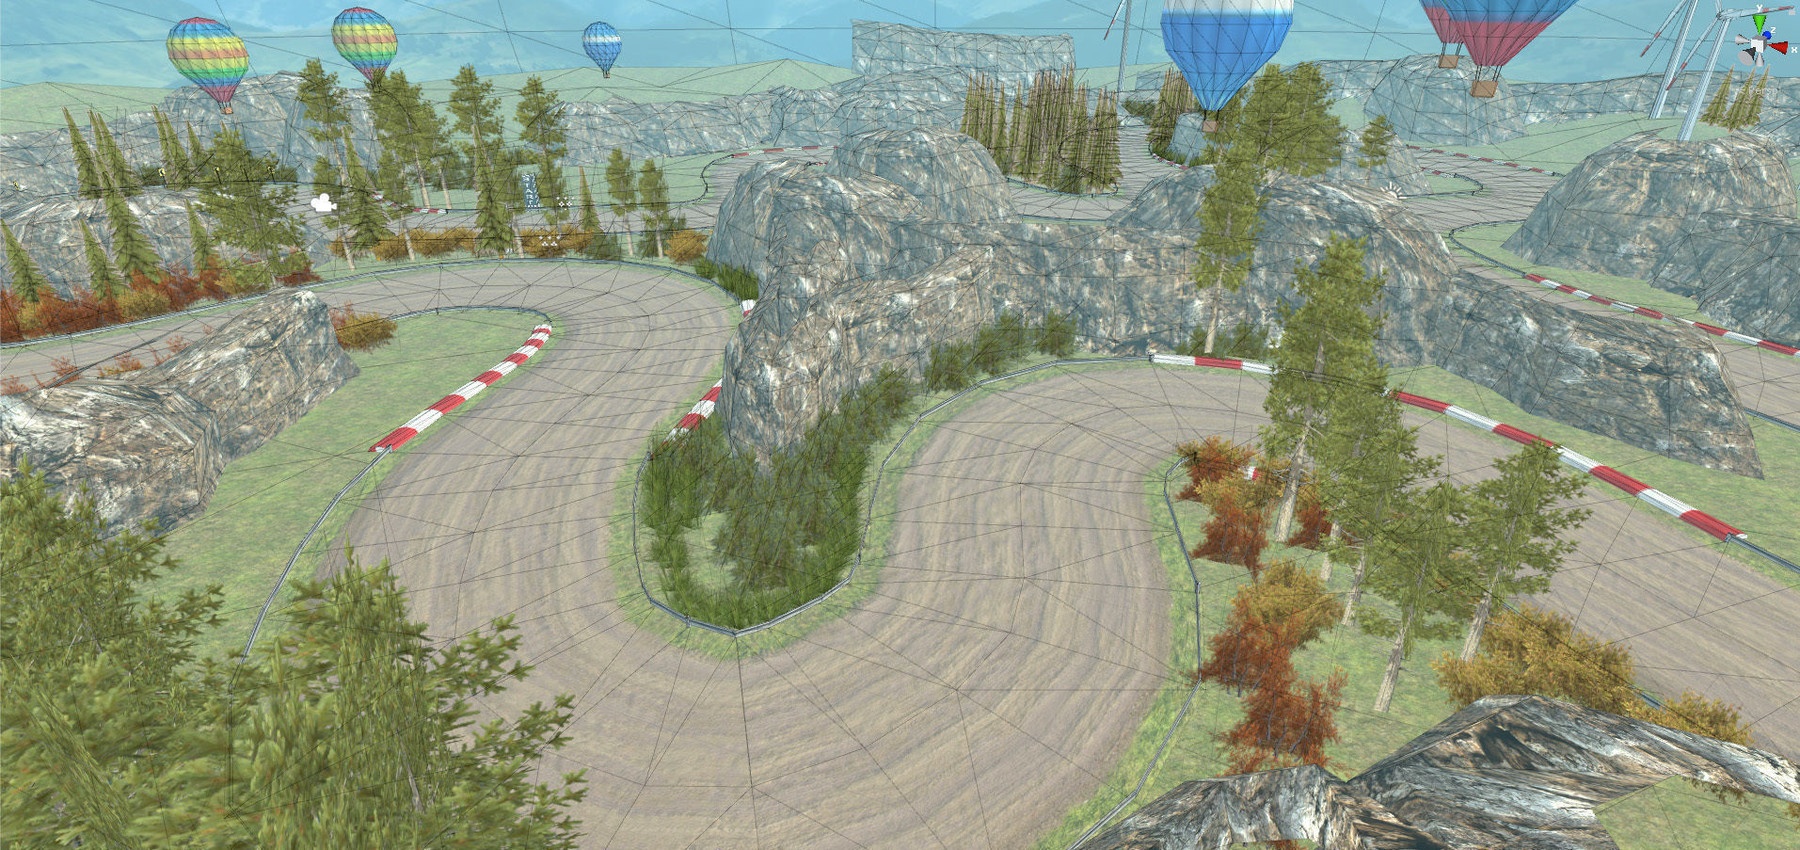 Rally Race Track Road Environment Pack For Mobile Games Unity3d